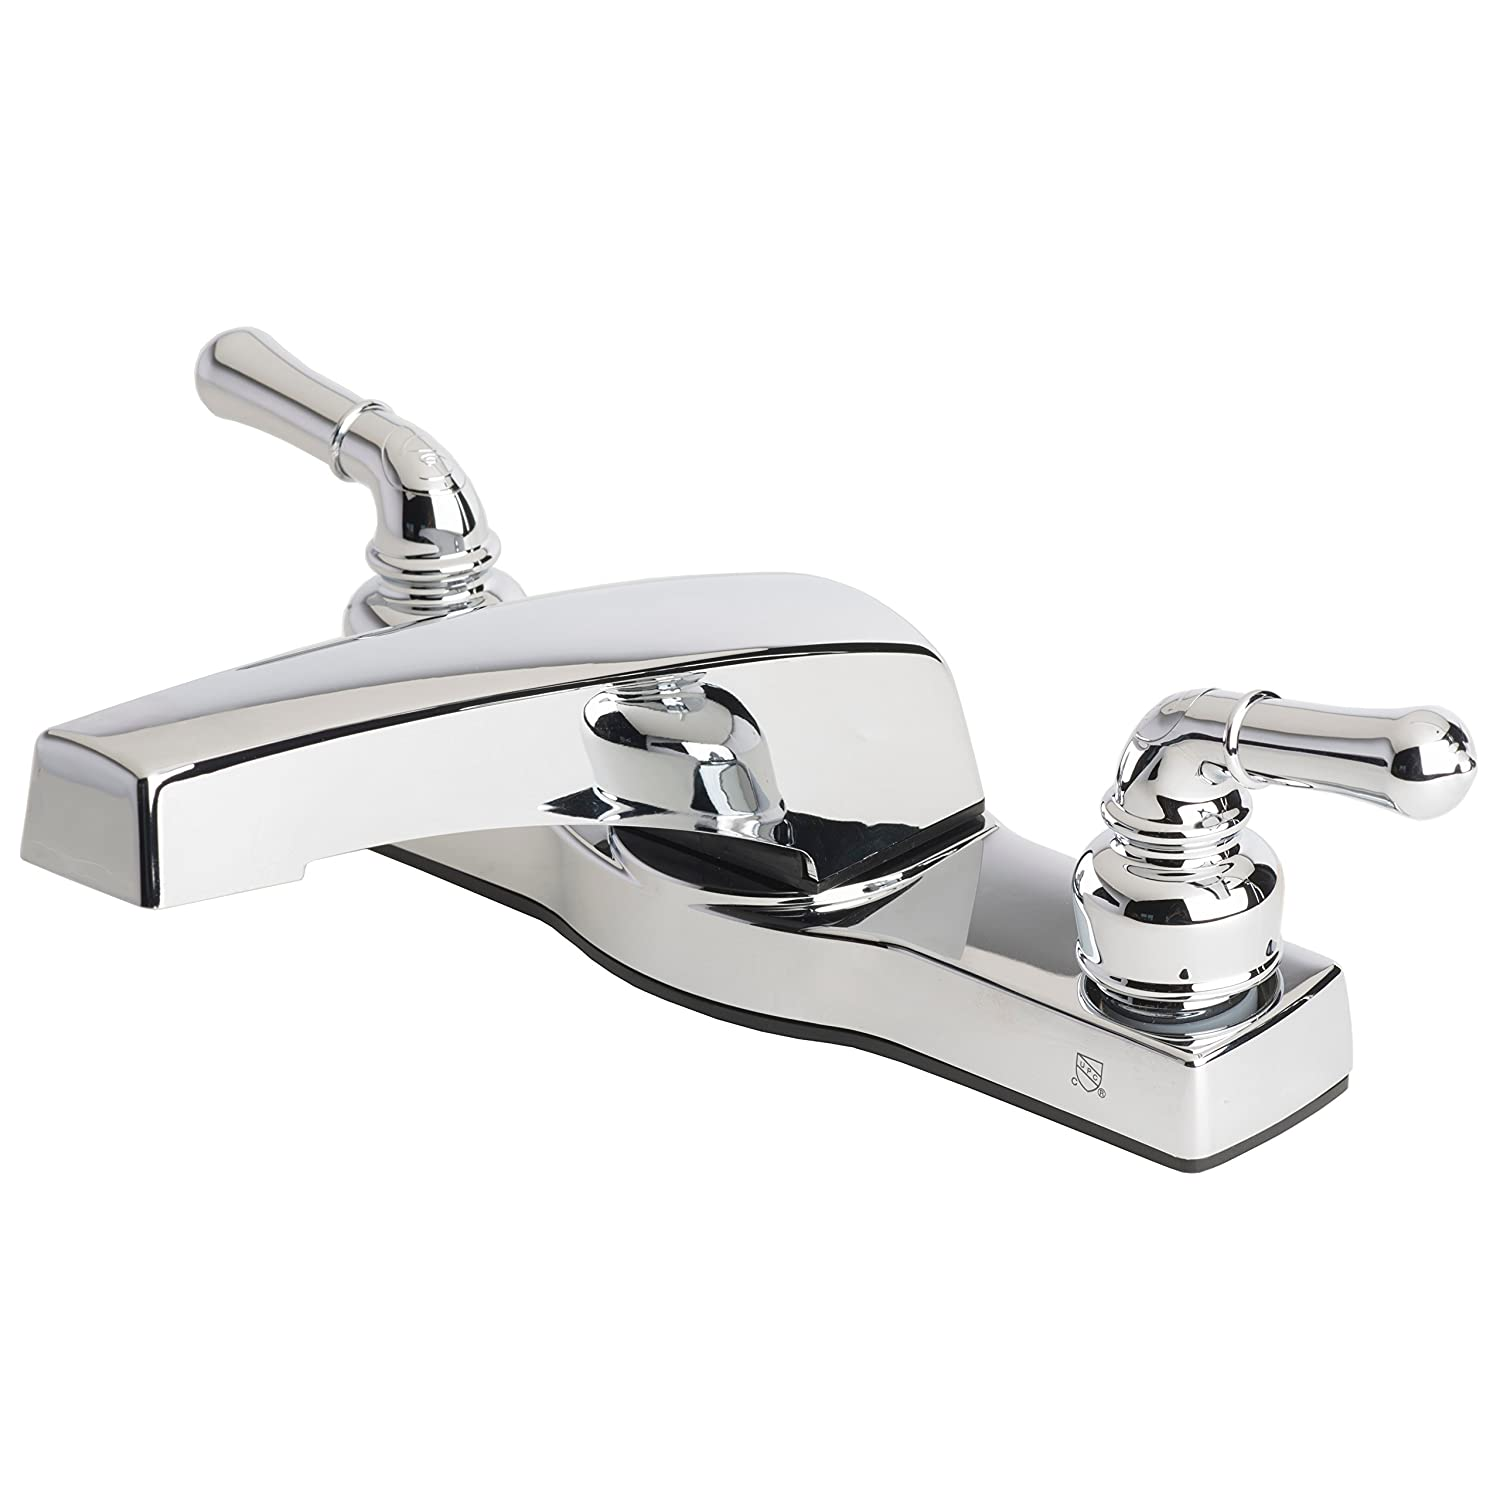 "Builders Shoppe 3341CP Mobile Home Two Handle Non-Metallic 8"" Deck Mount Garden Tub Filler Faucet Chrome Finish"